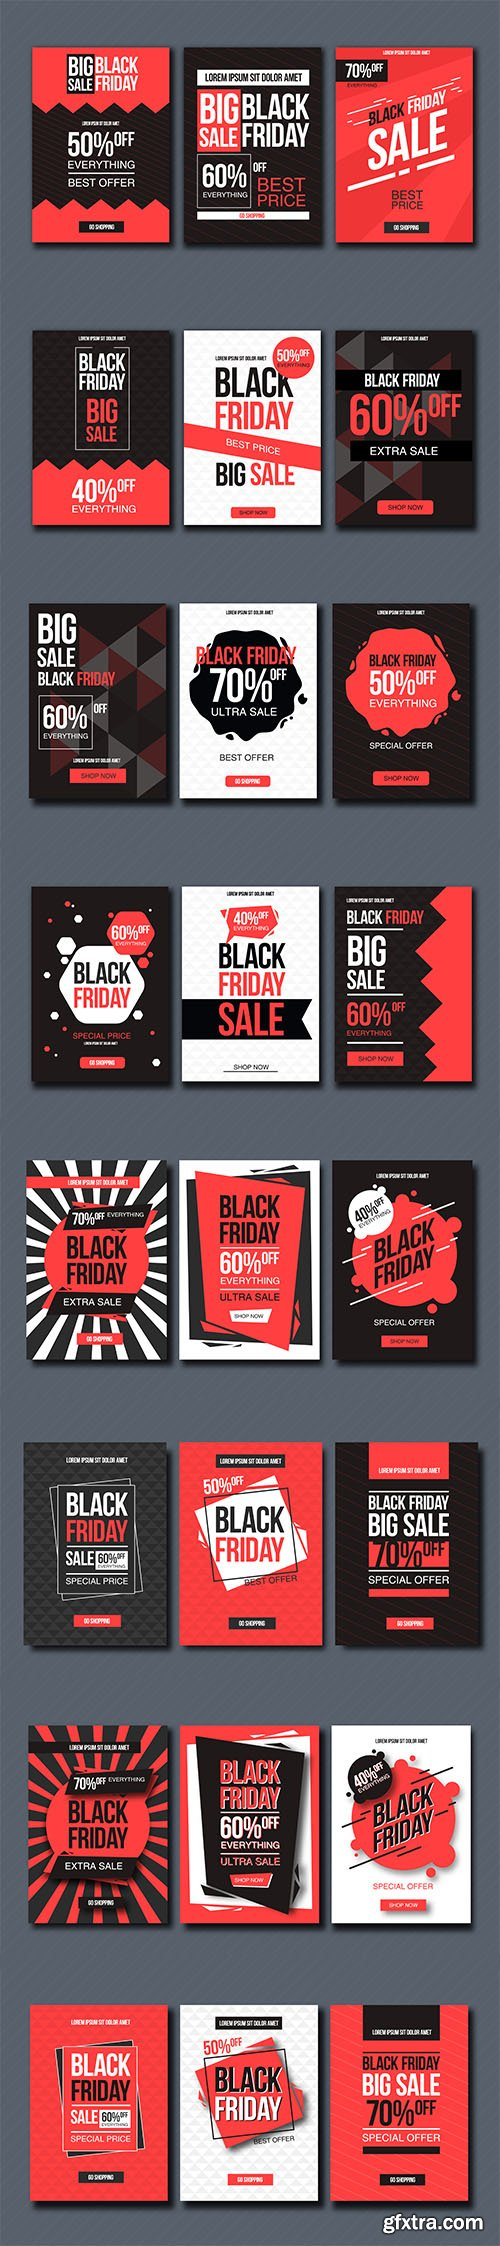 Black Friday Sale Design Template Set